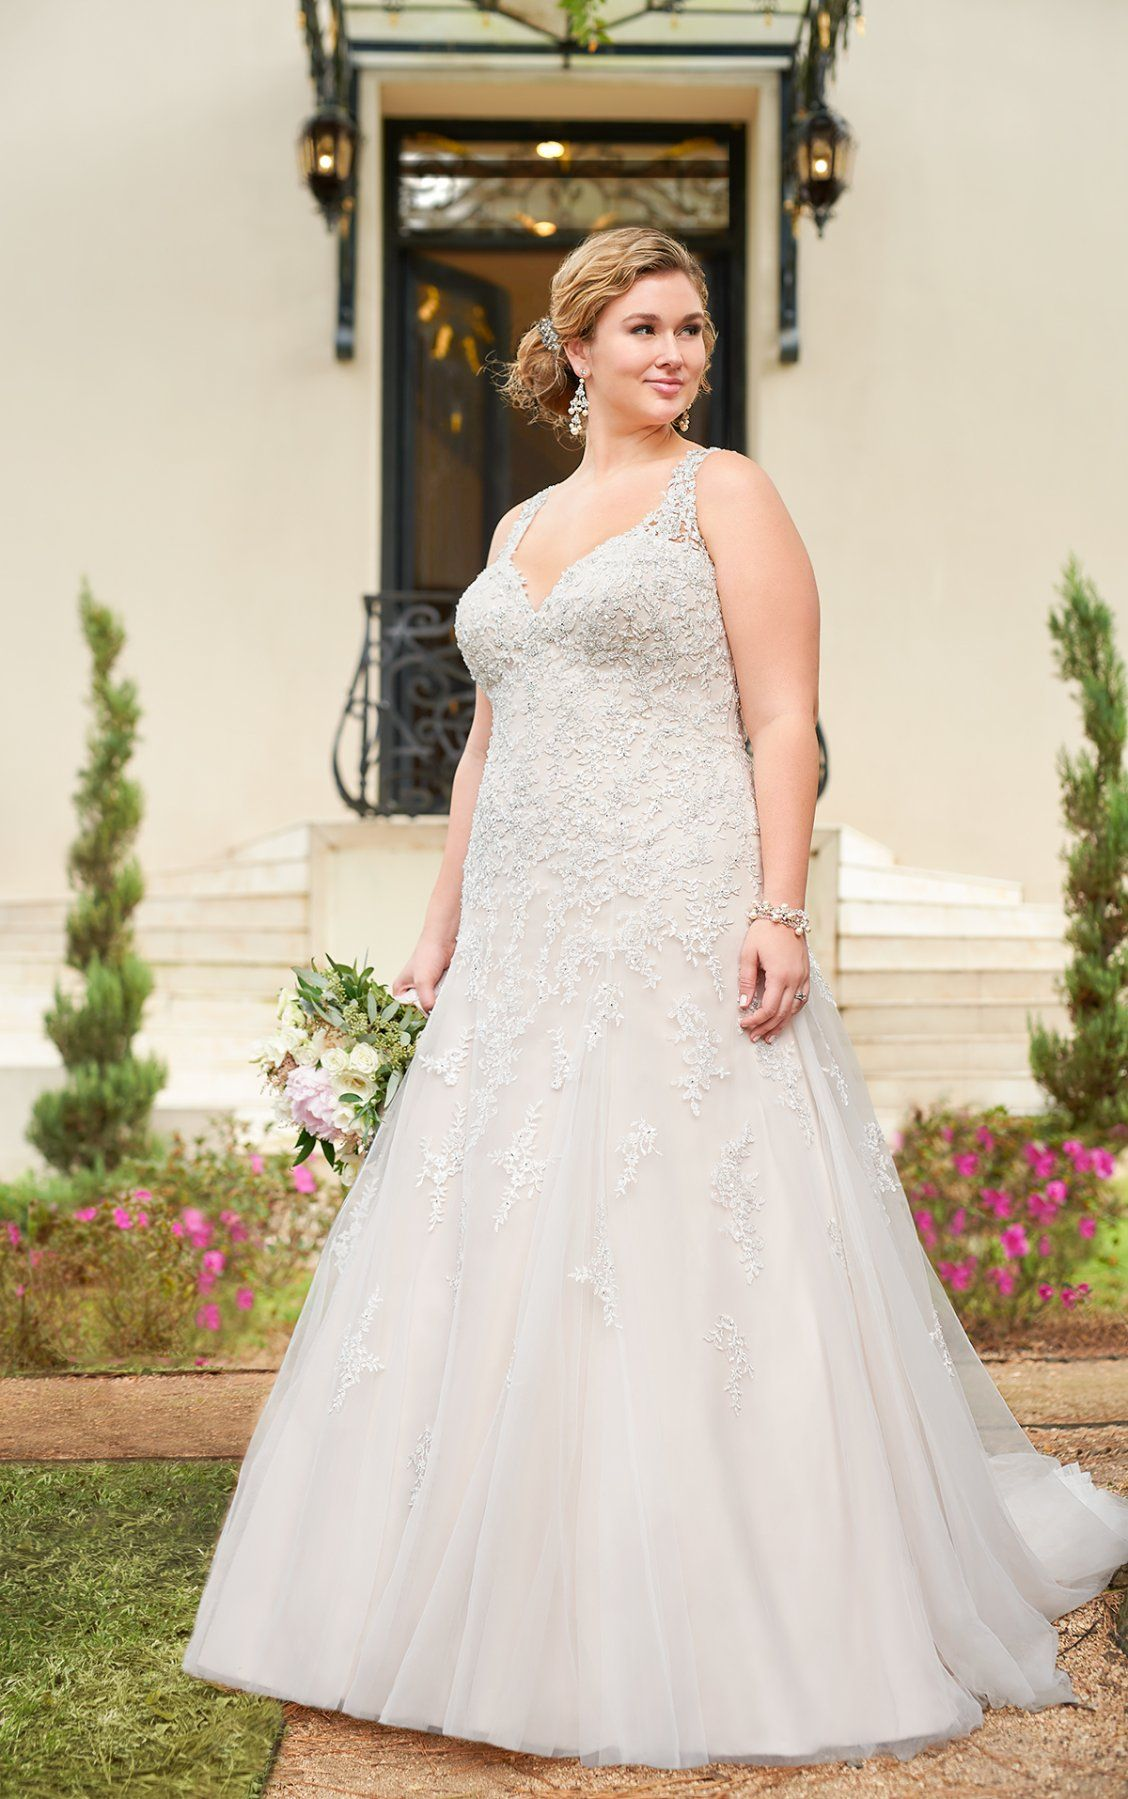 Sparkling Silver Lace Plus Size Wedding Dress Plus Size Wedding Gowns Stella York Wedding Dress Wedding Dresses Blush